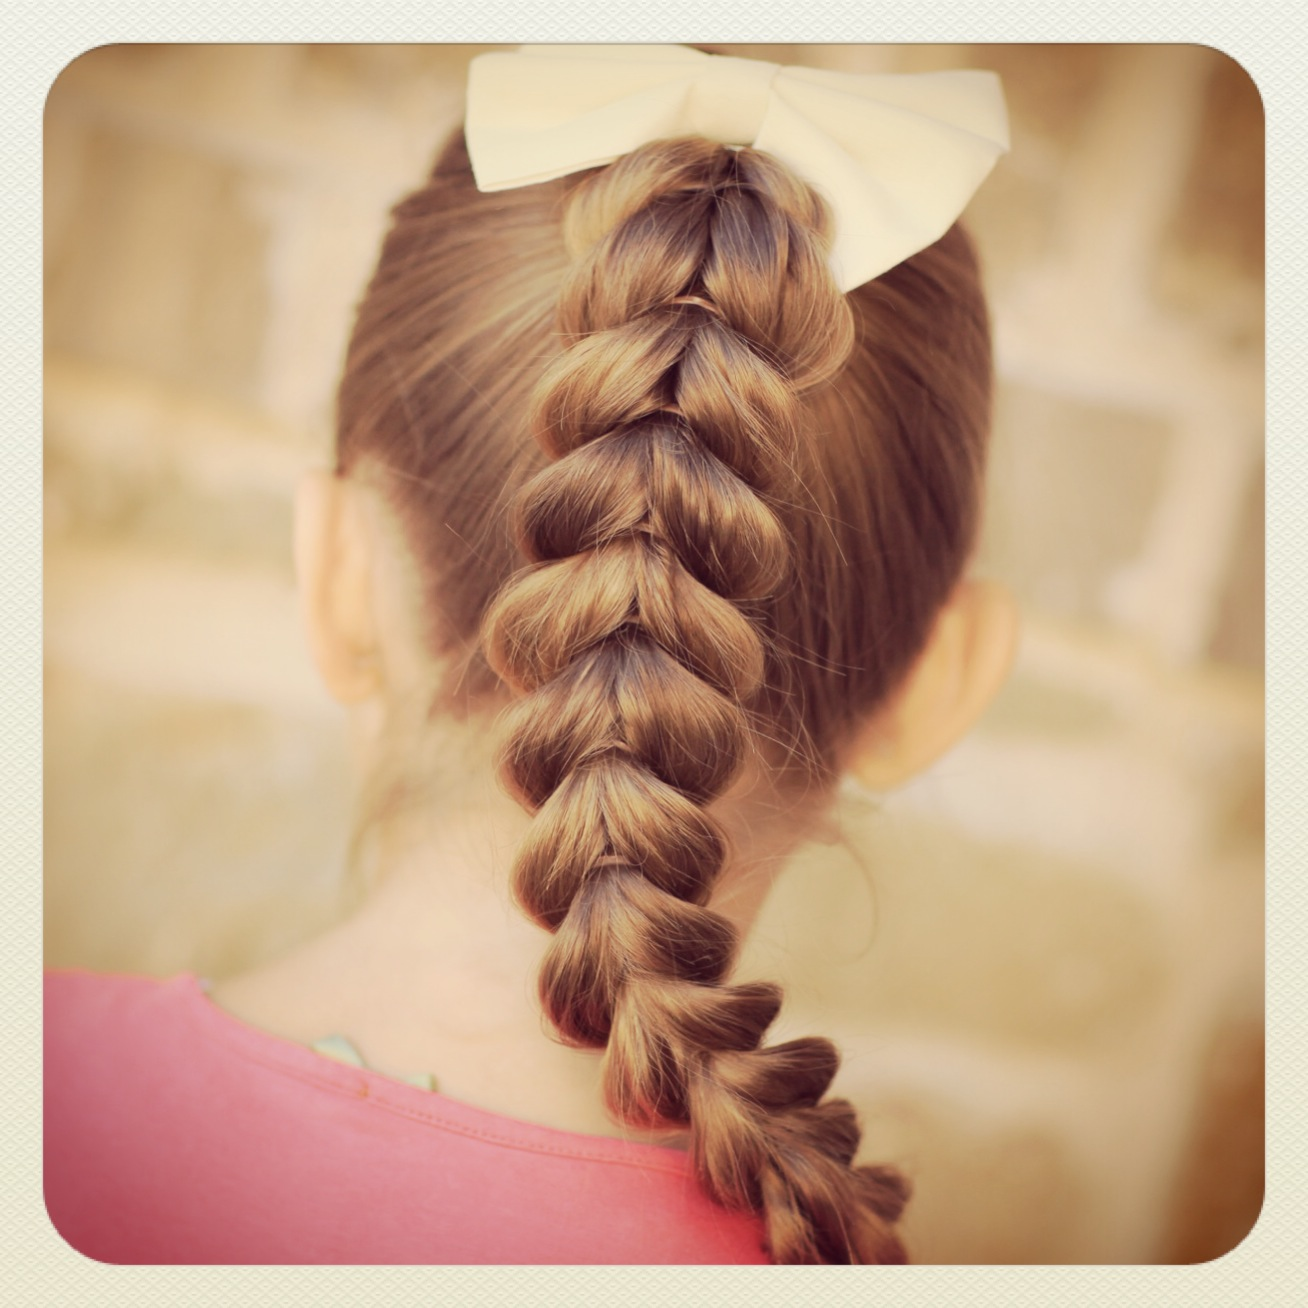 Stupendous Pull Through Braid Easy Hairstyles Cute Girls Hairstyles Natural Hairstyles Runnerswayorg